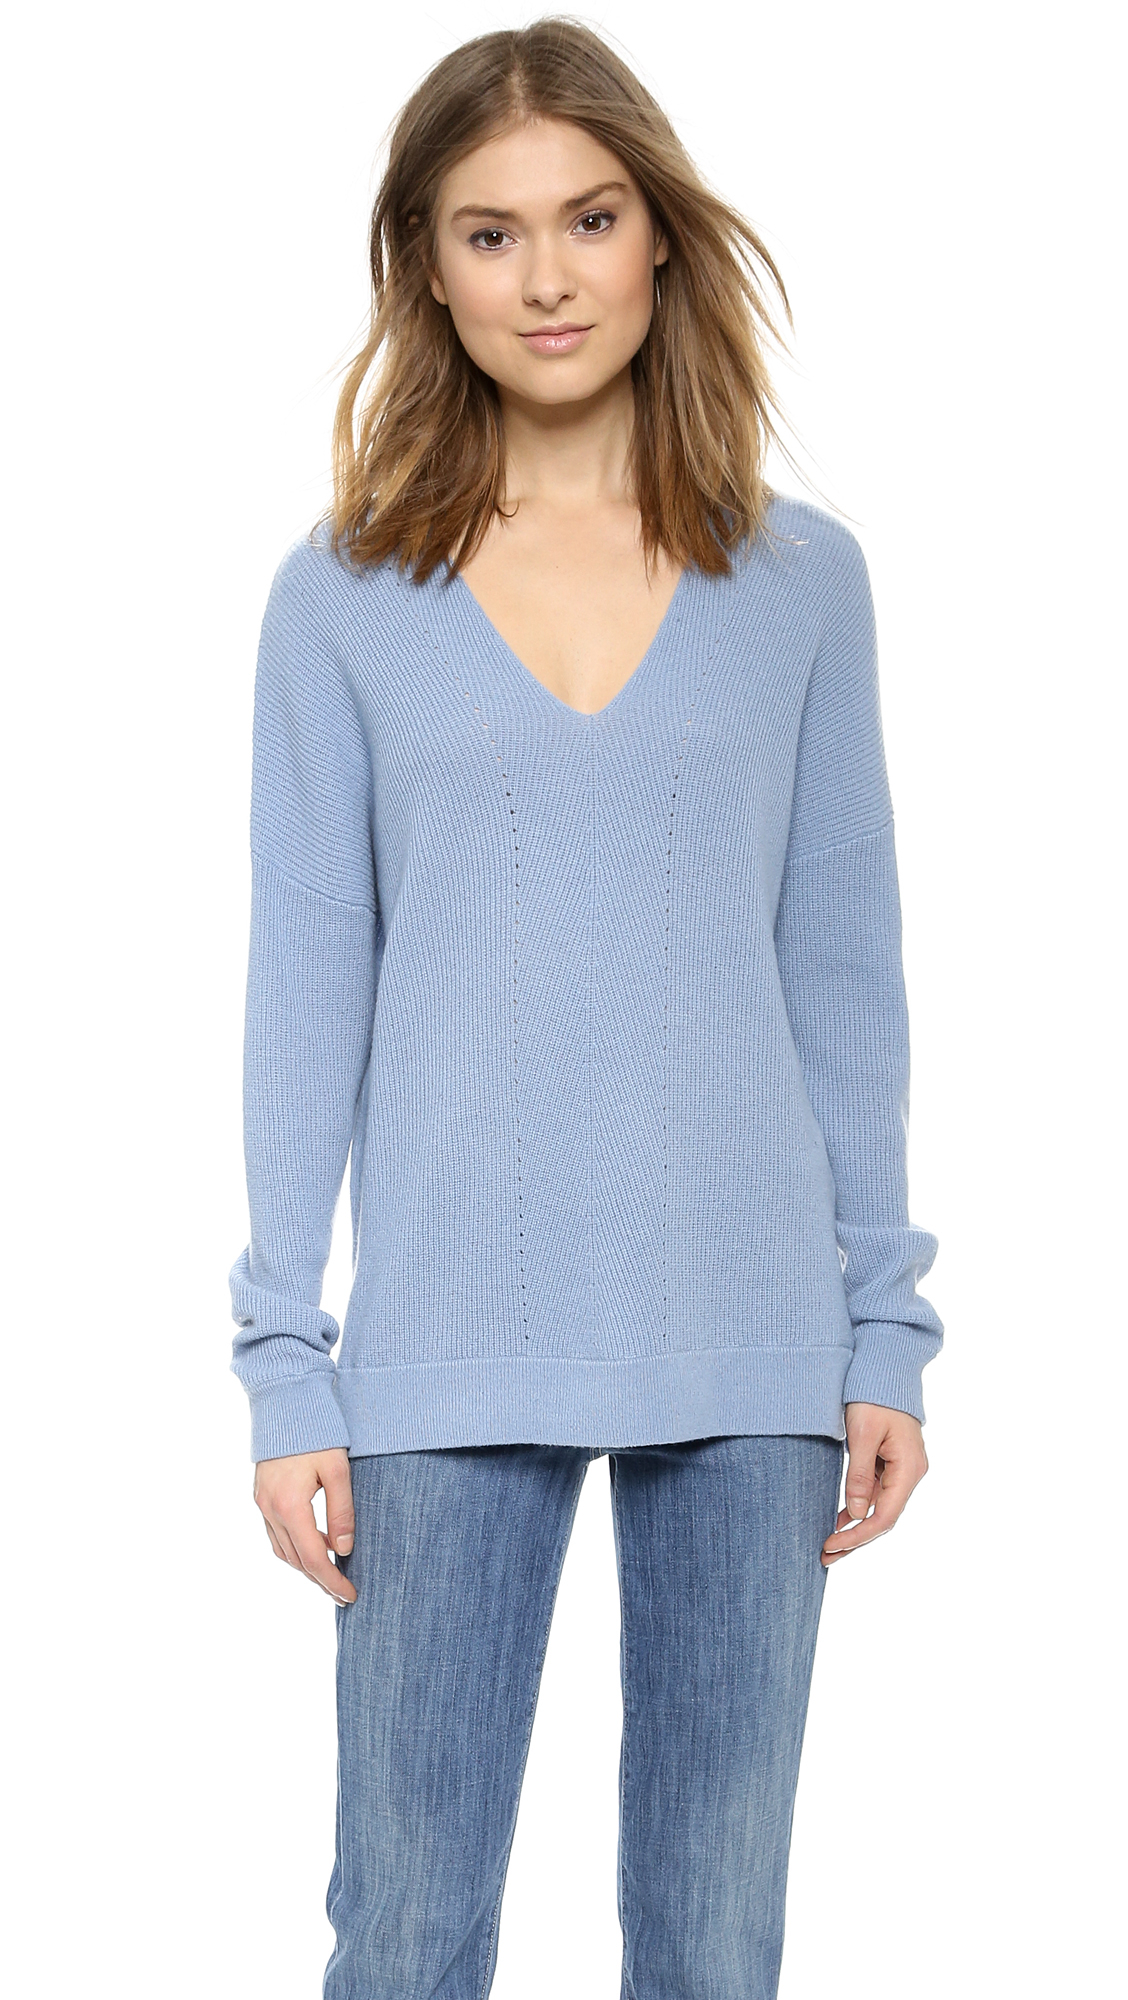 Blue cashmere sweater gallery MHRUXDJ